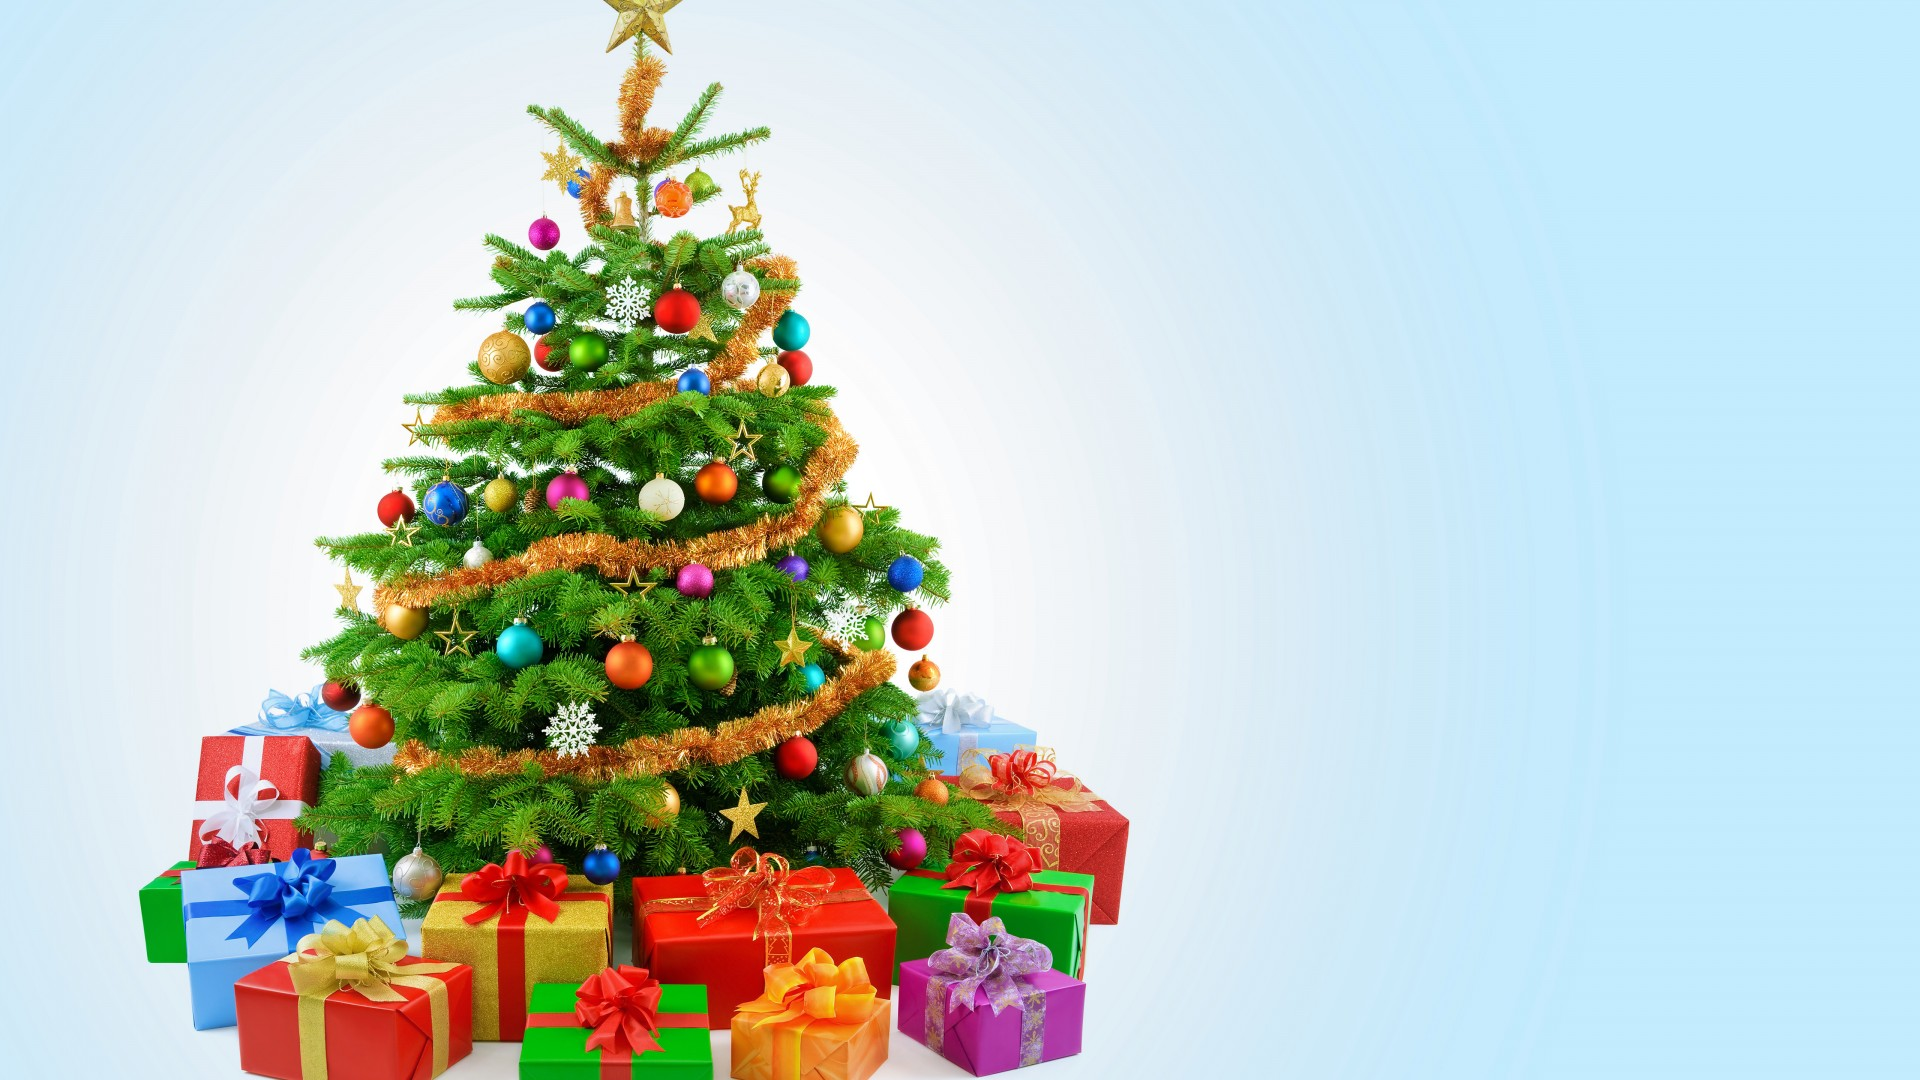 Christmas Tree Images Hd.20 Merry Christmas Hd Wallpapers 1080p 2018 Collection